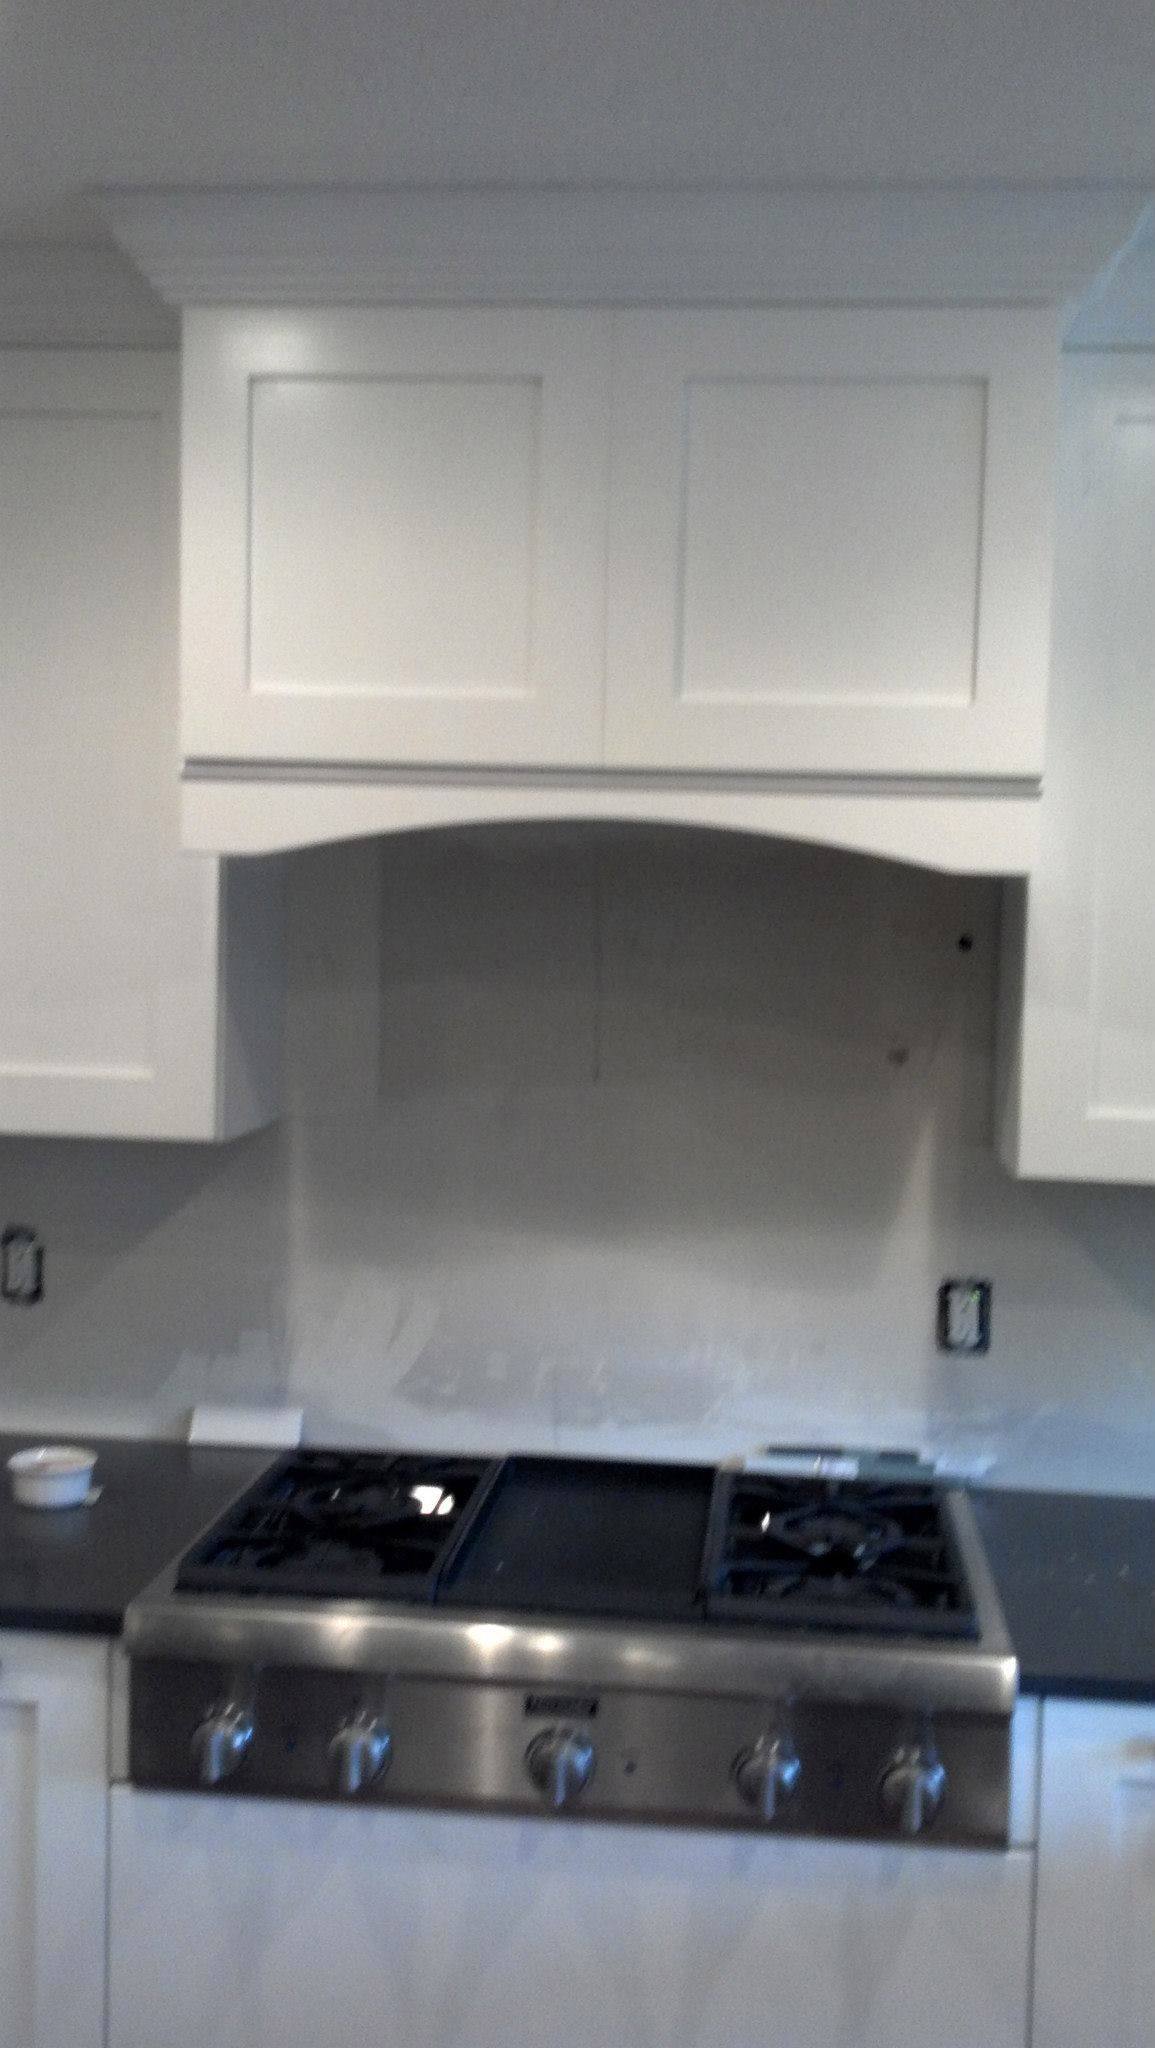 Clean White Under Cabinet Proline Range Hood Install By Ivy League Builders.